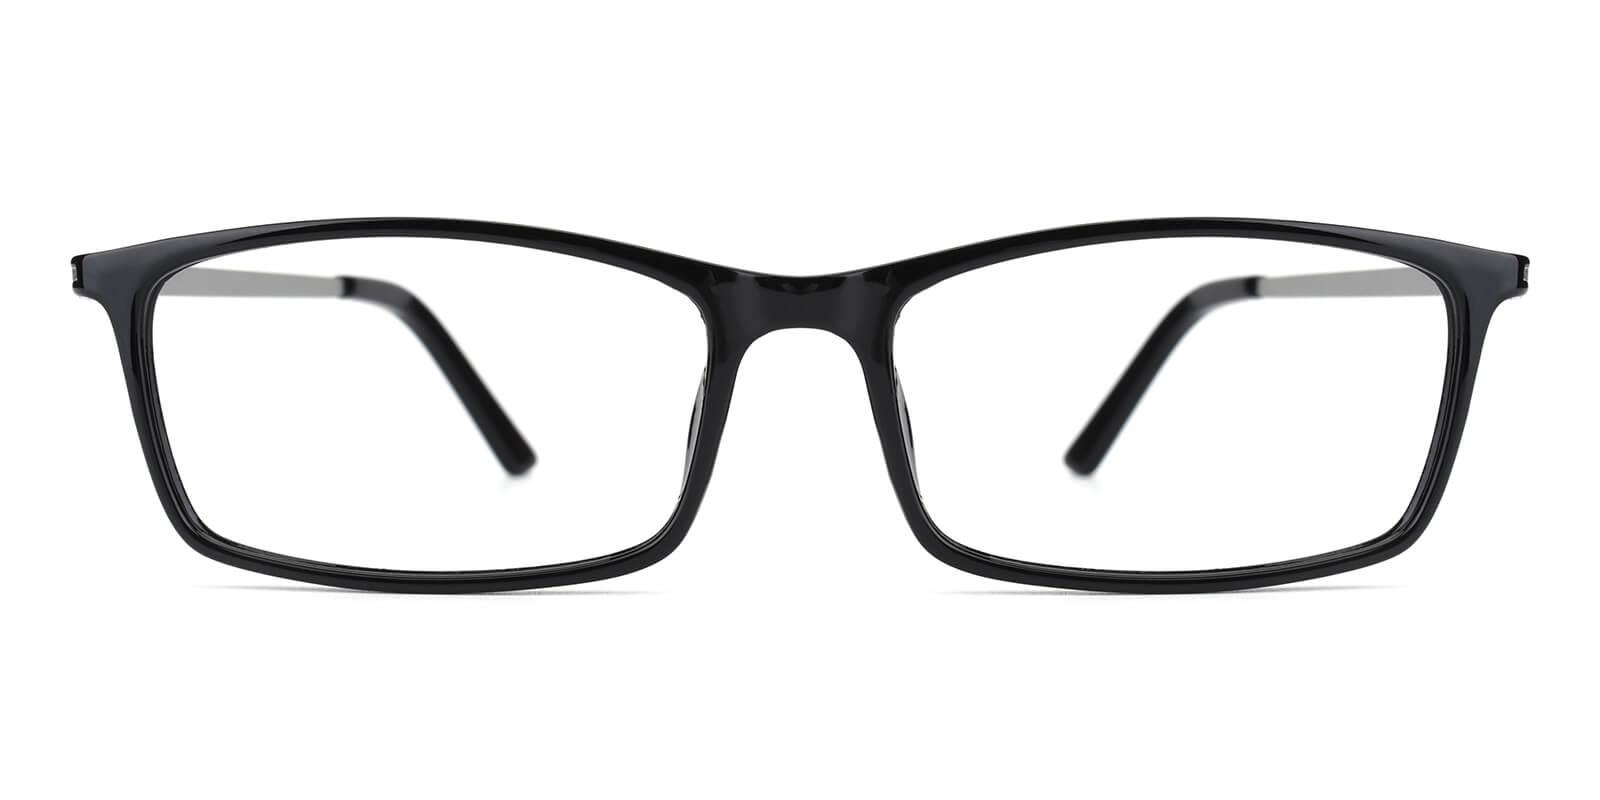 Relarus-Black-Rectangle-TR-Eyeglasses-detail